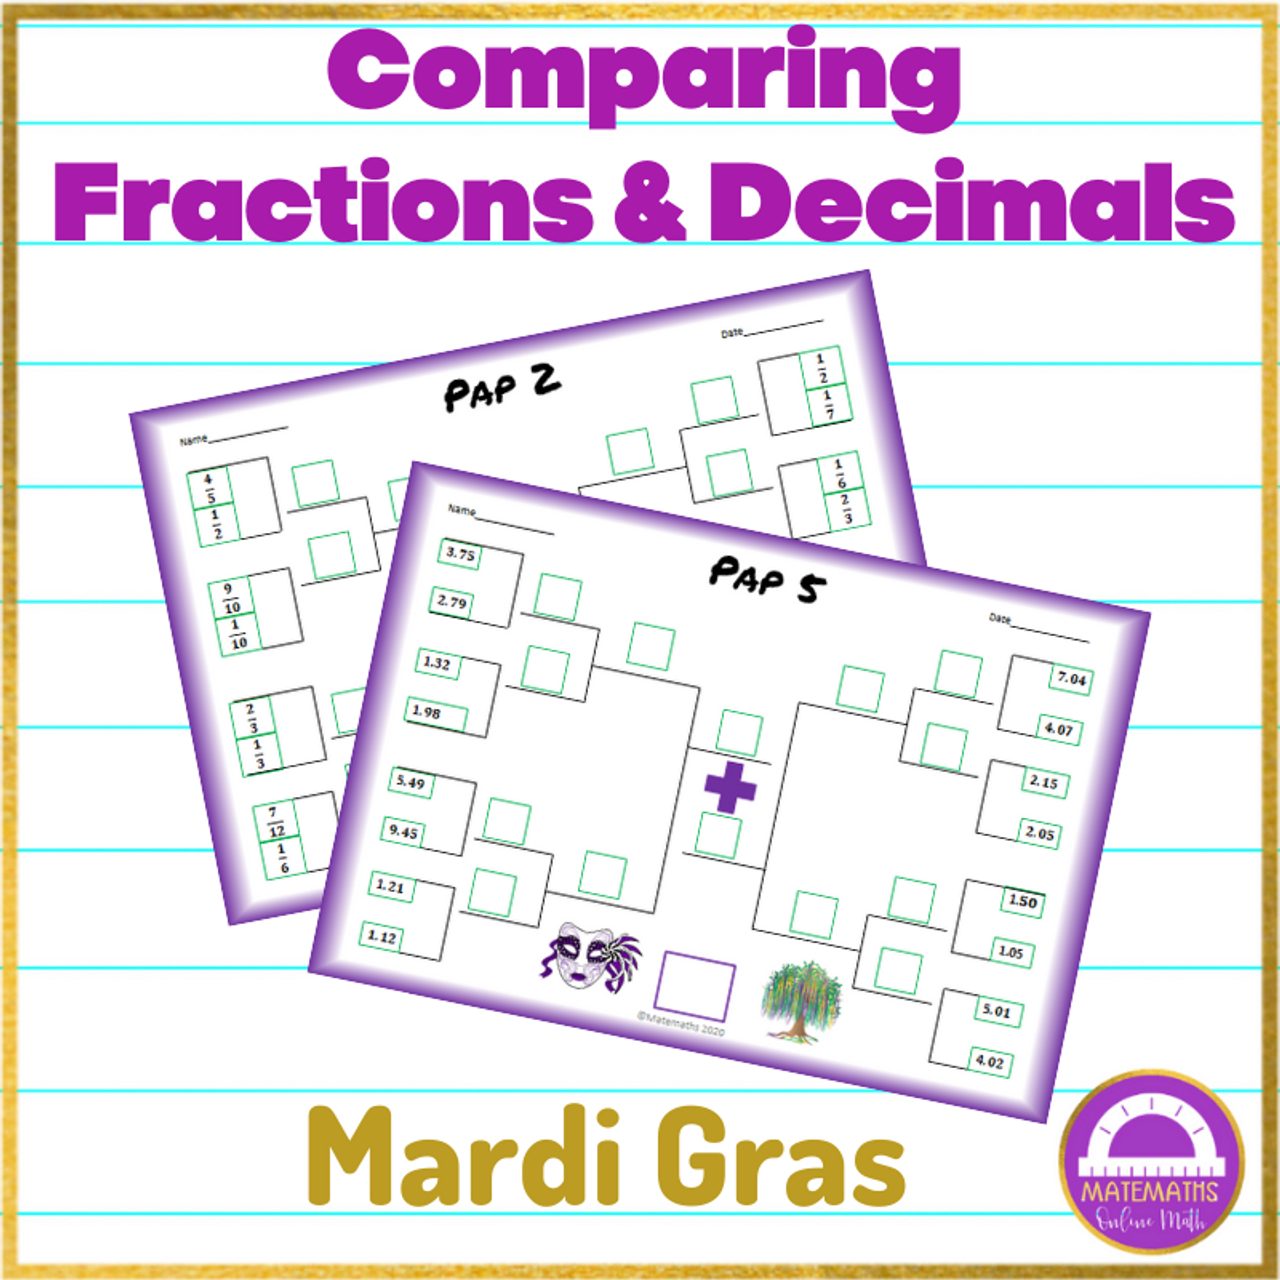 Mardi Gras Comparing Fractions and Decimals Activity